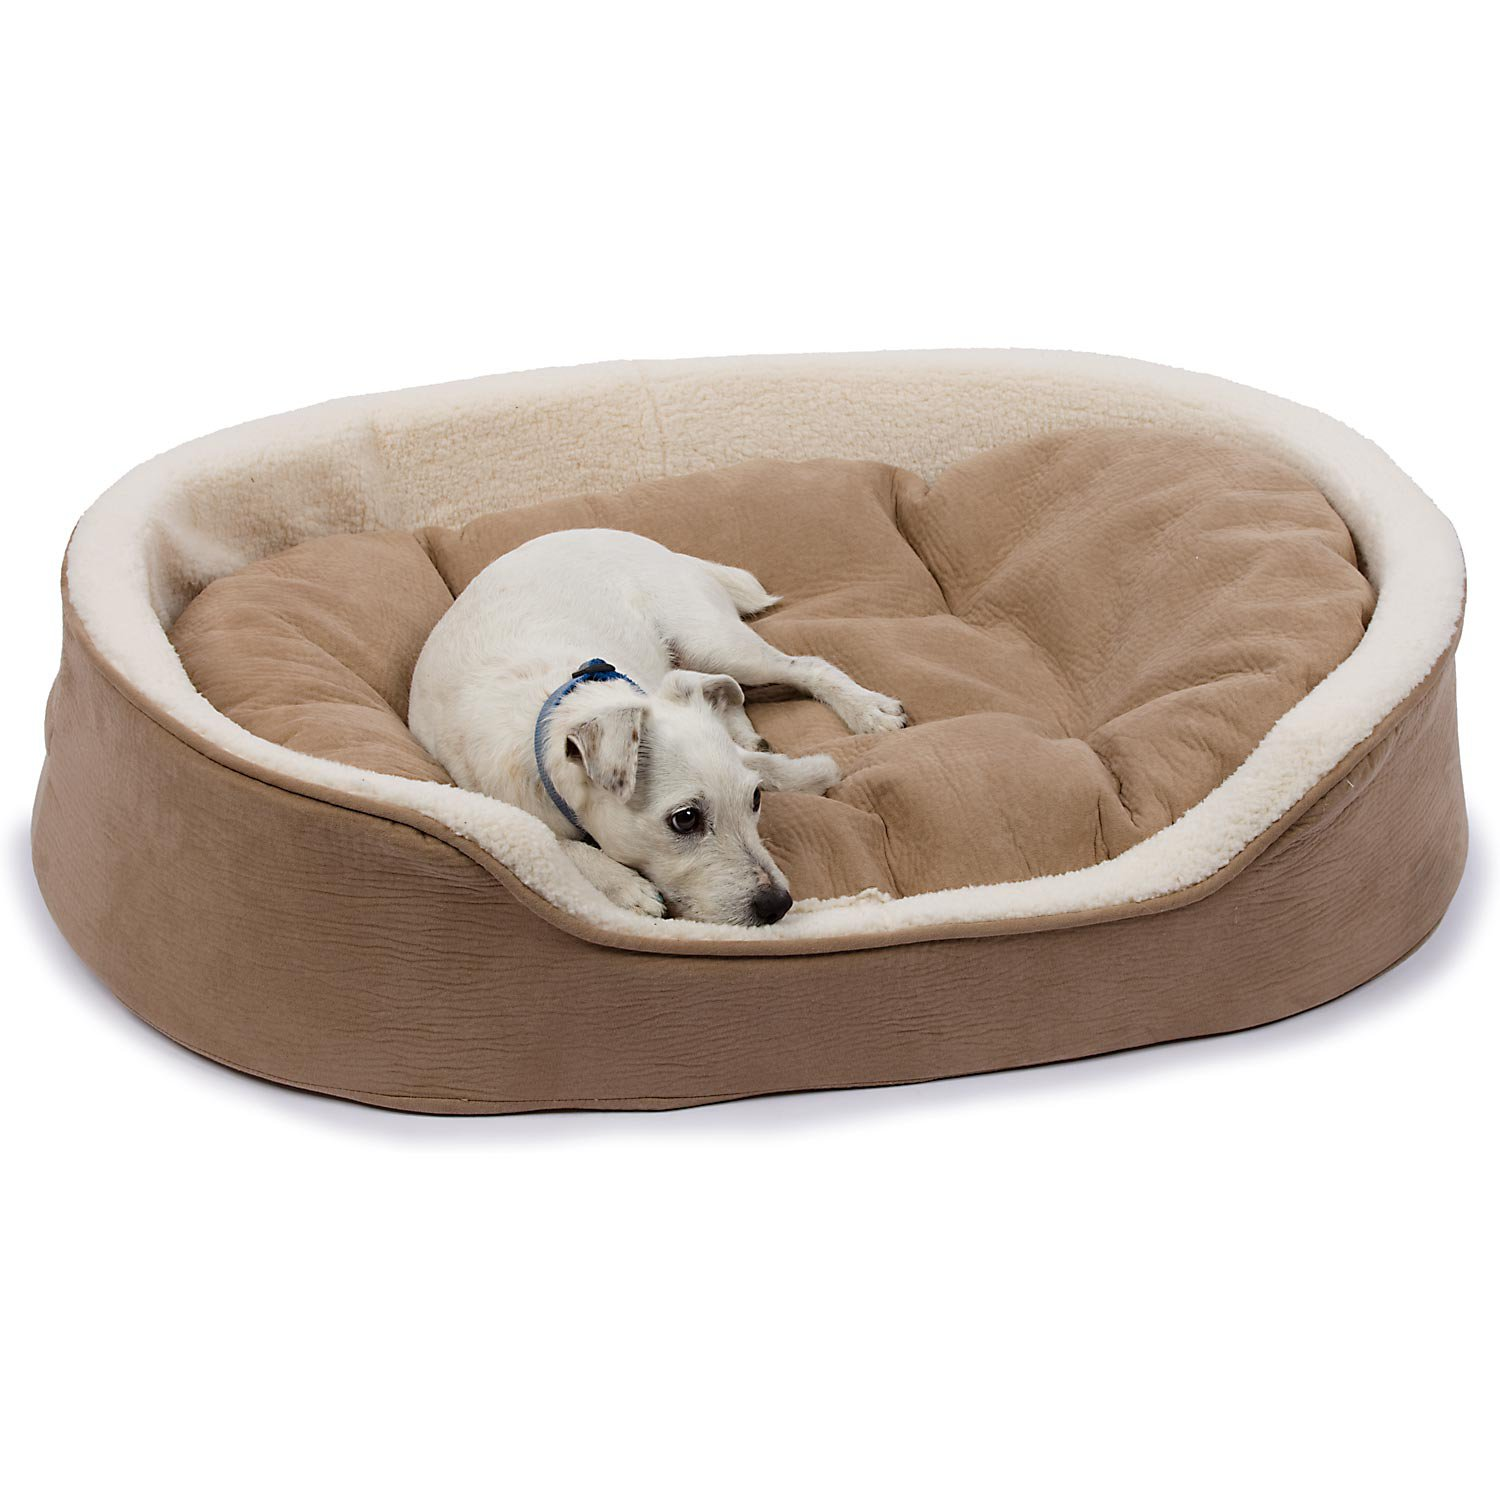 juneclaypool doggie best beds bed on pink a kittens cute princess dog images and puppy pinterest for